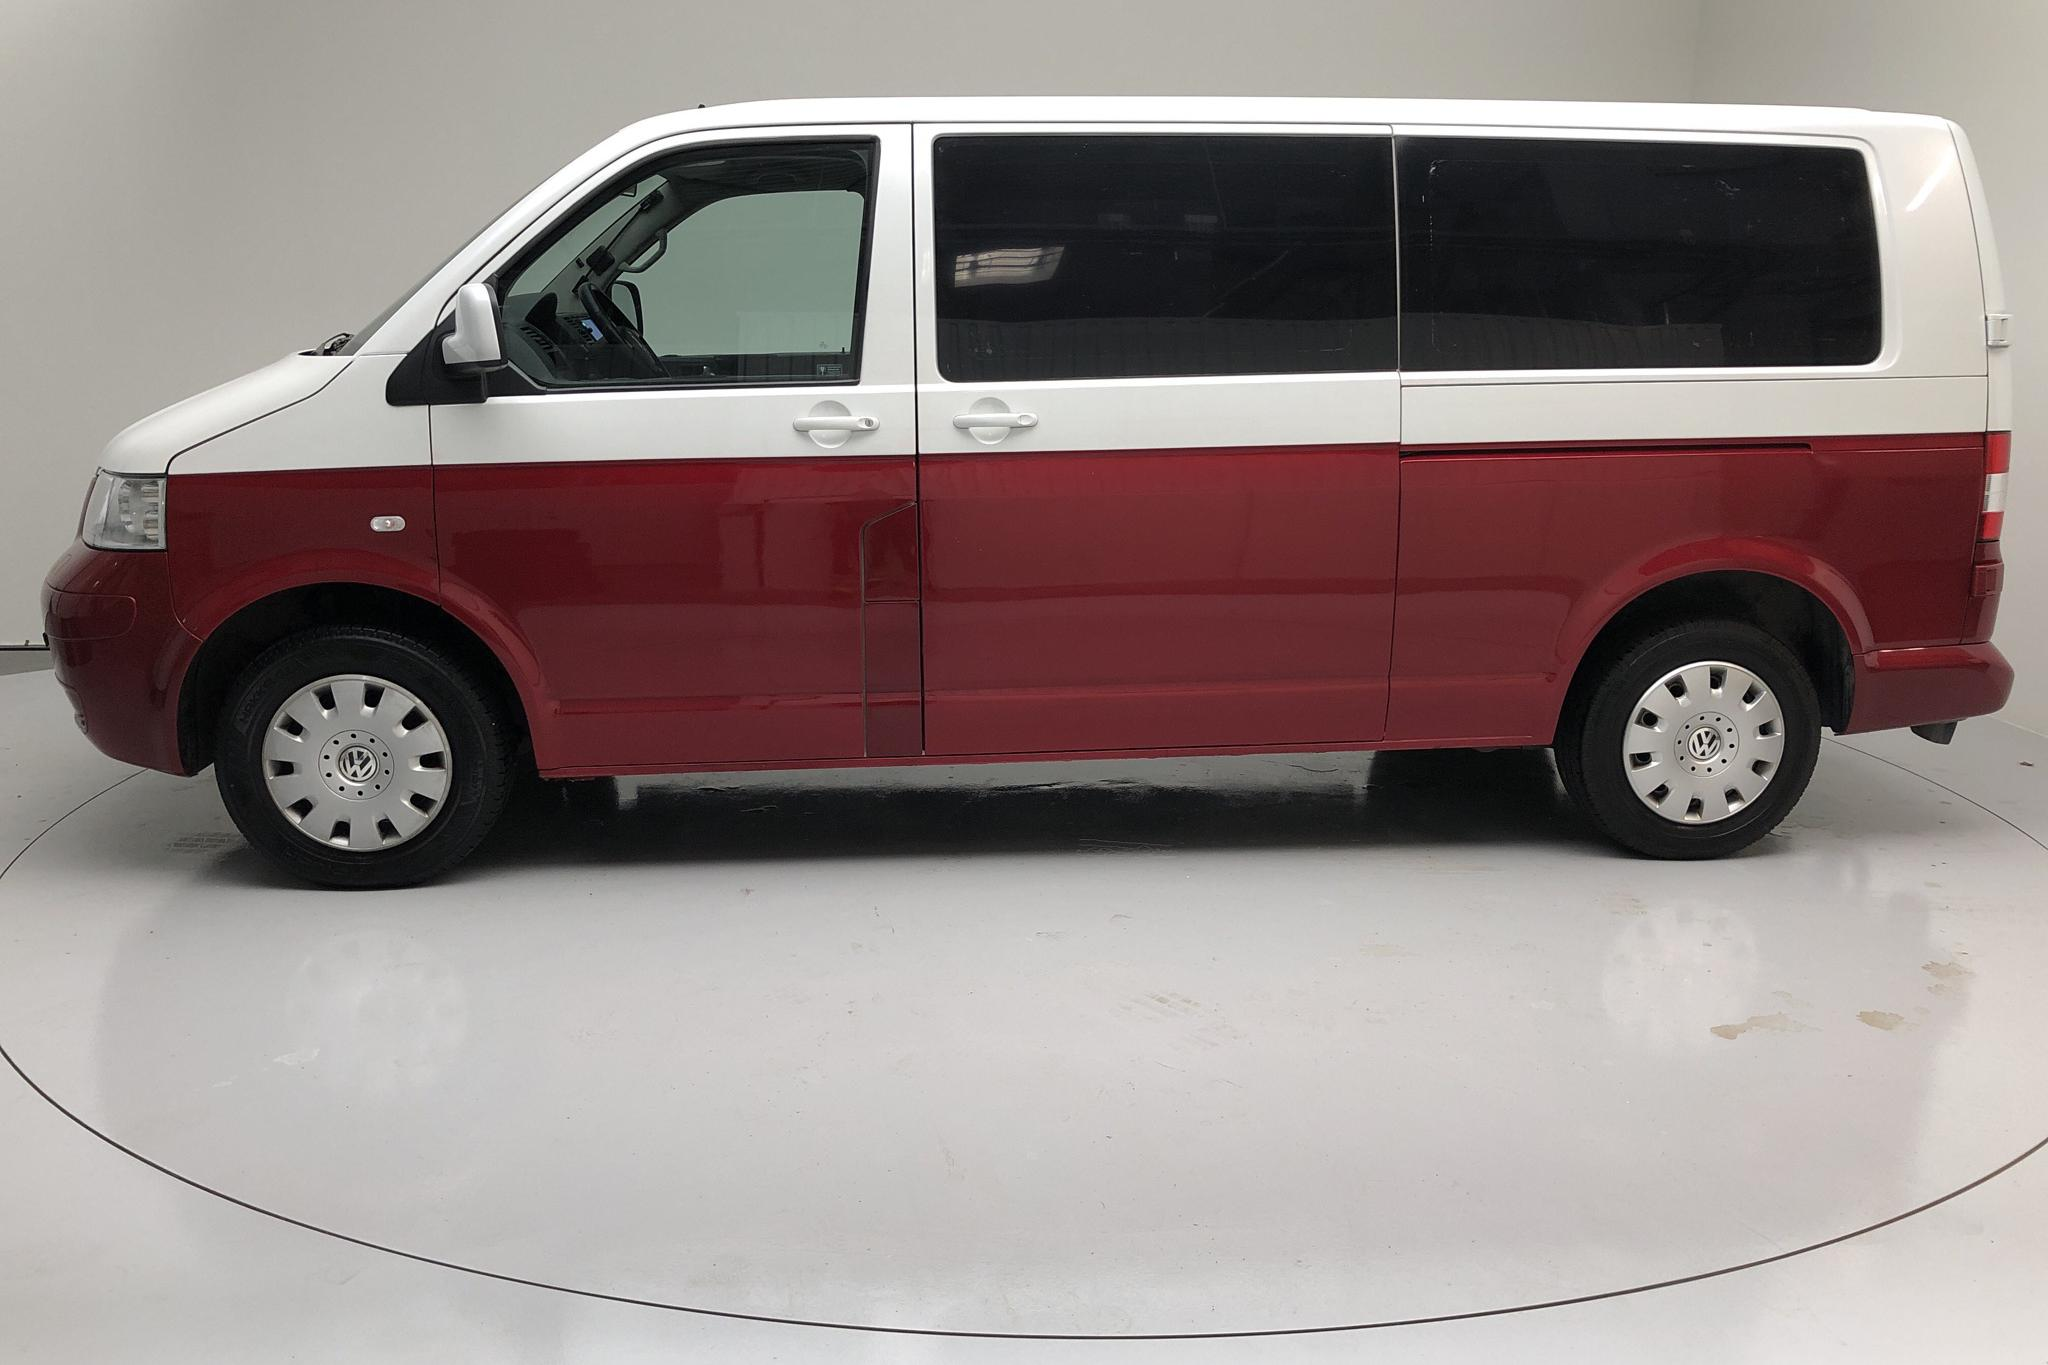 VW Caravelle T5 2.5 TDI (174hk) - 127 065 km - Automatic - Multicolored - 2009